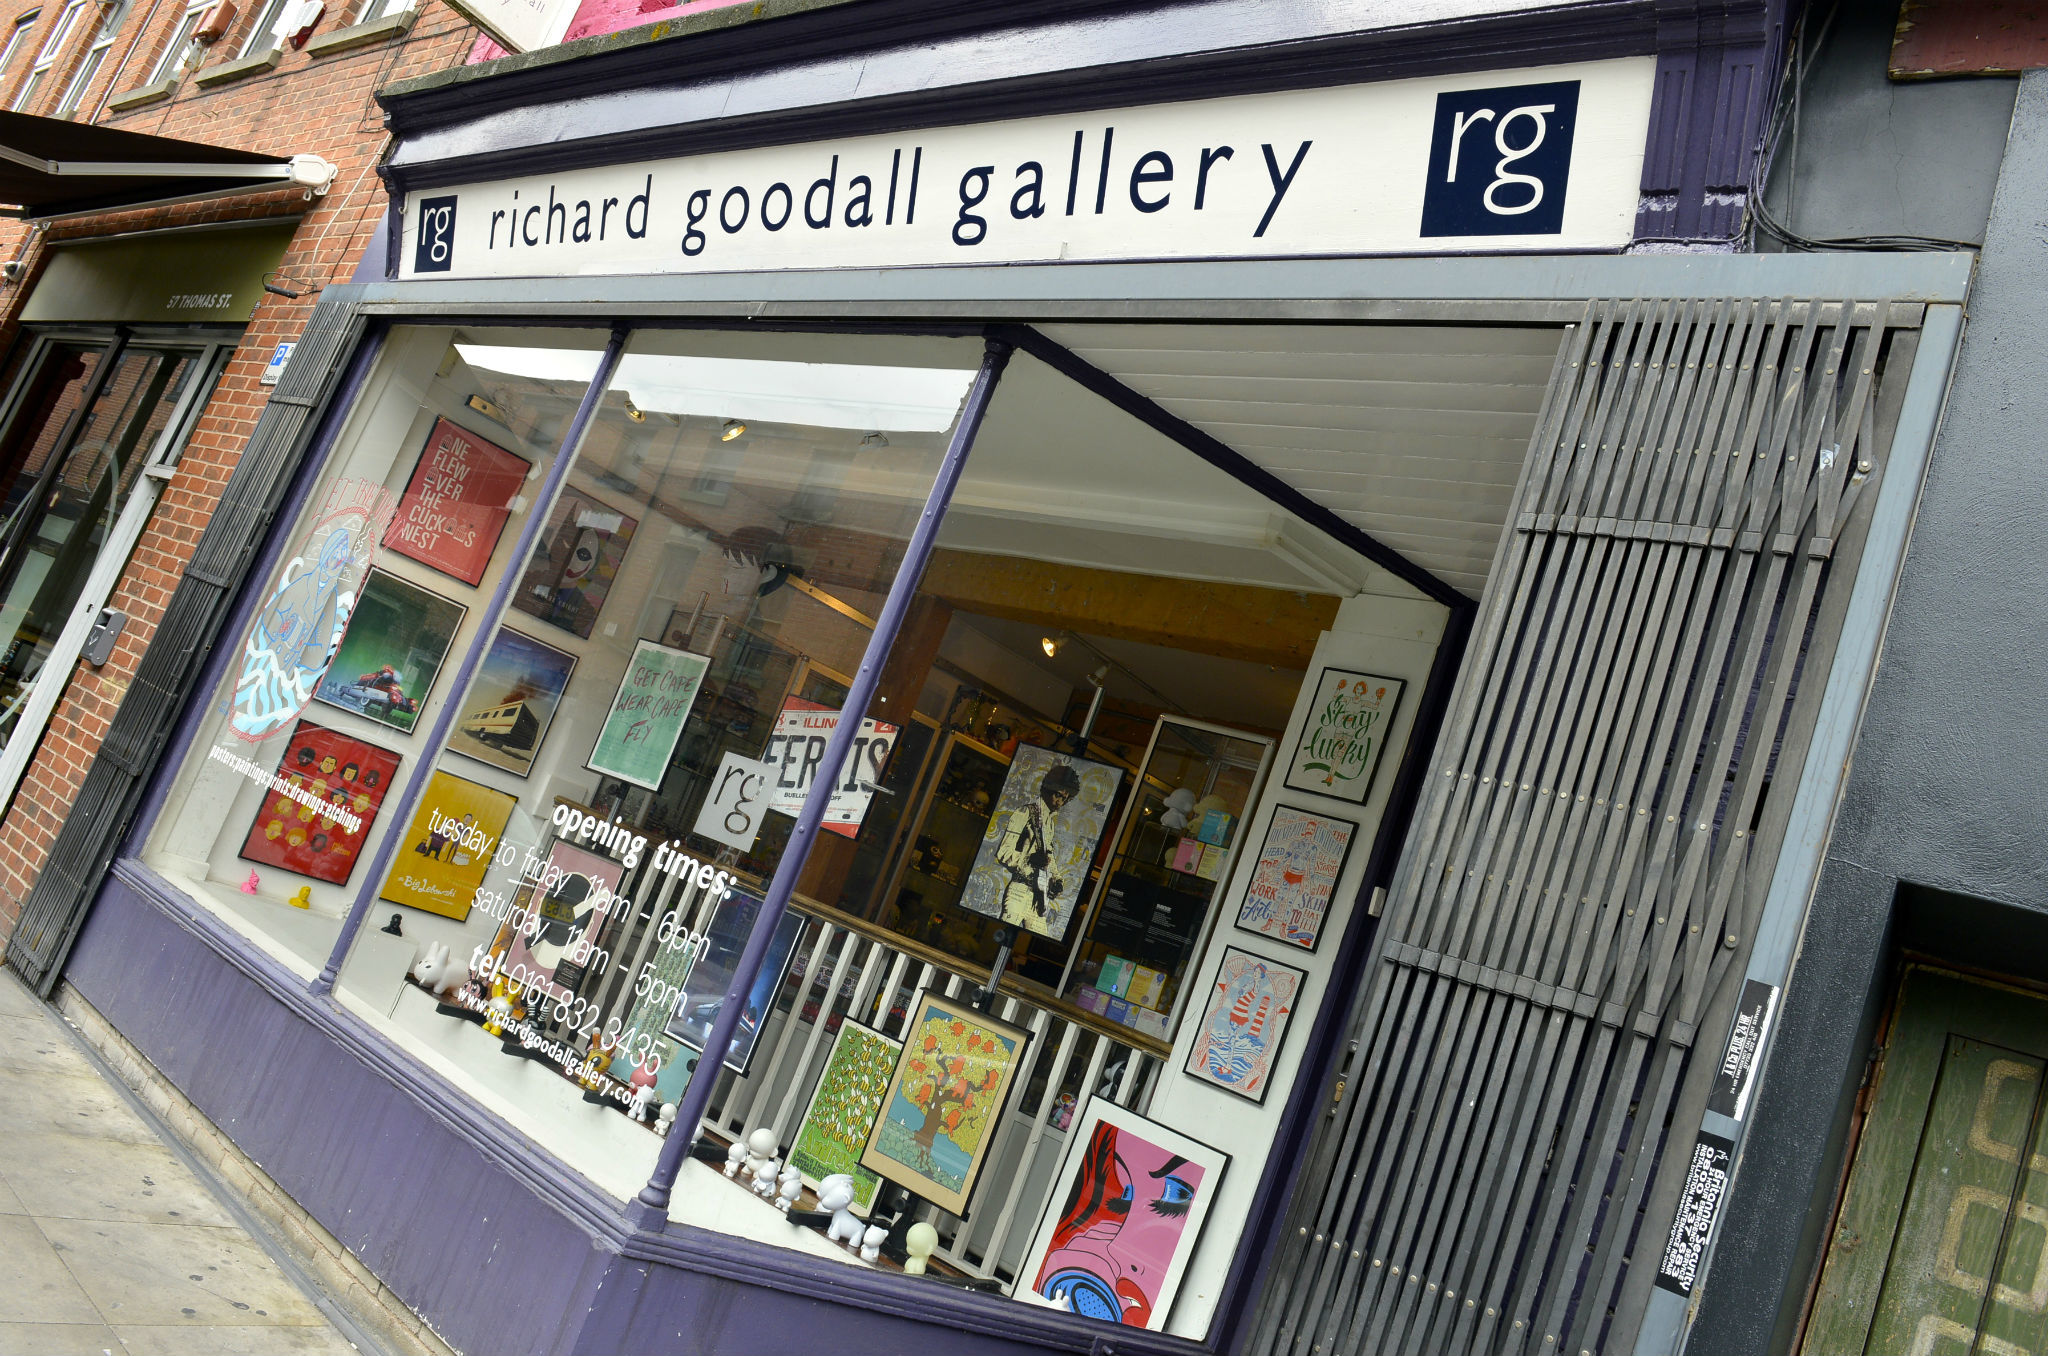 Richard Goodall Gallery